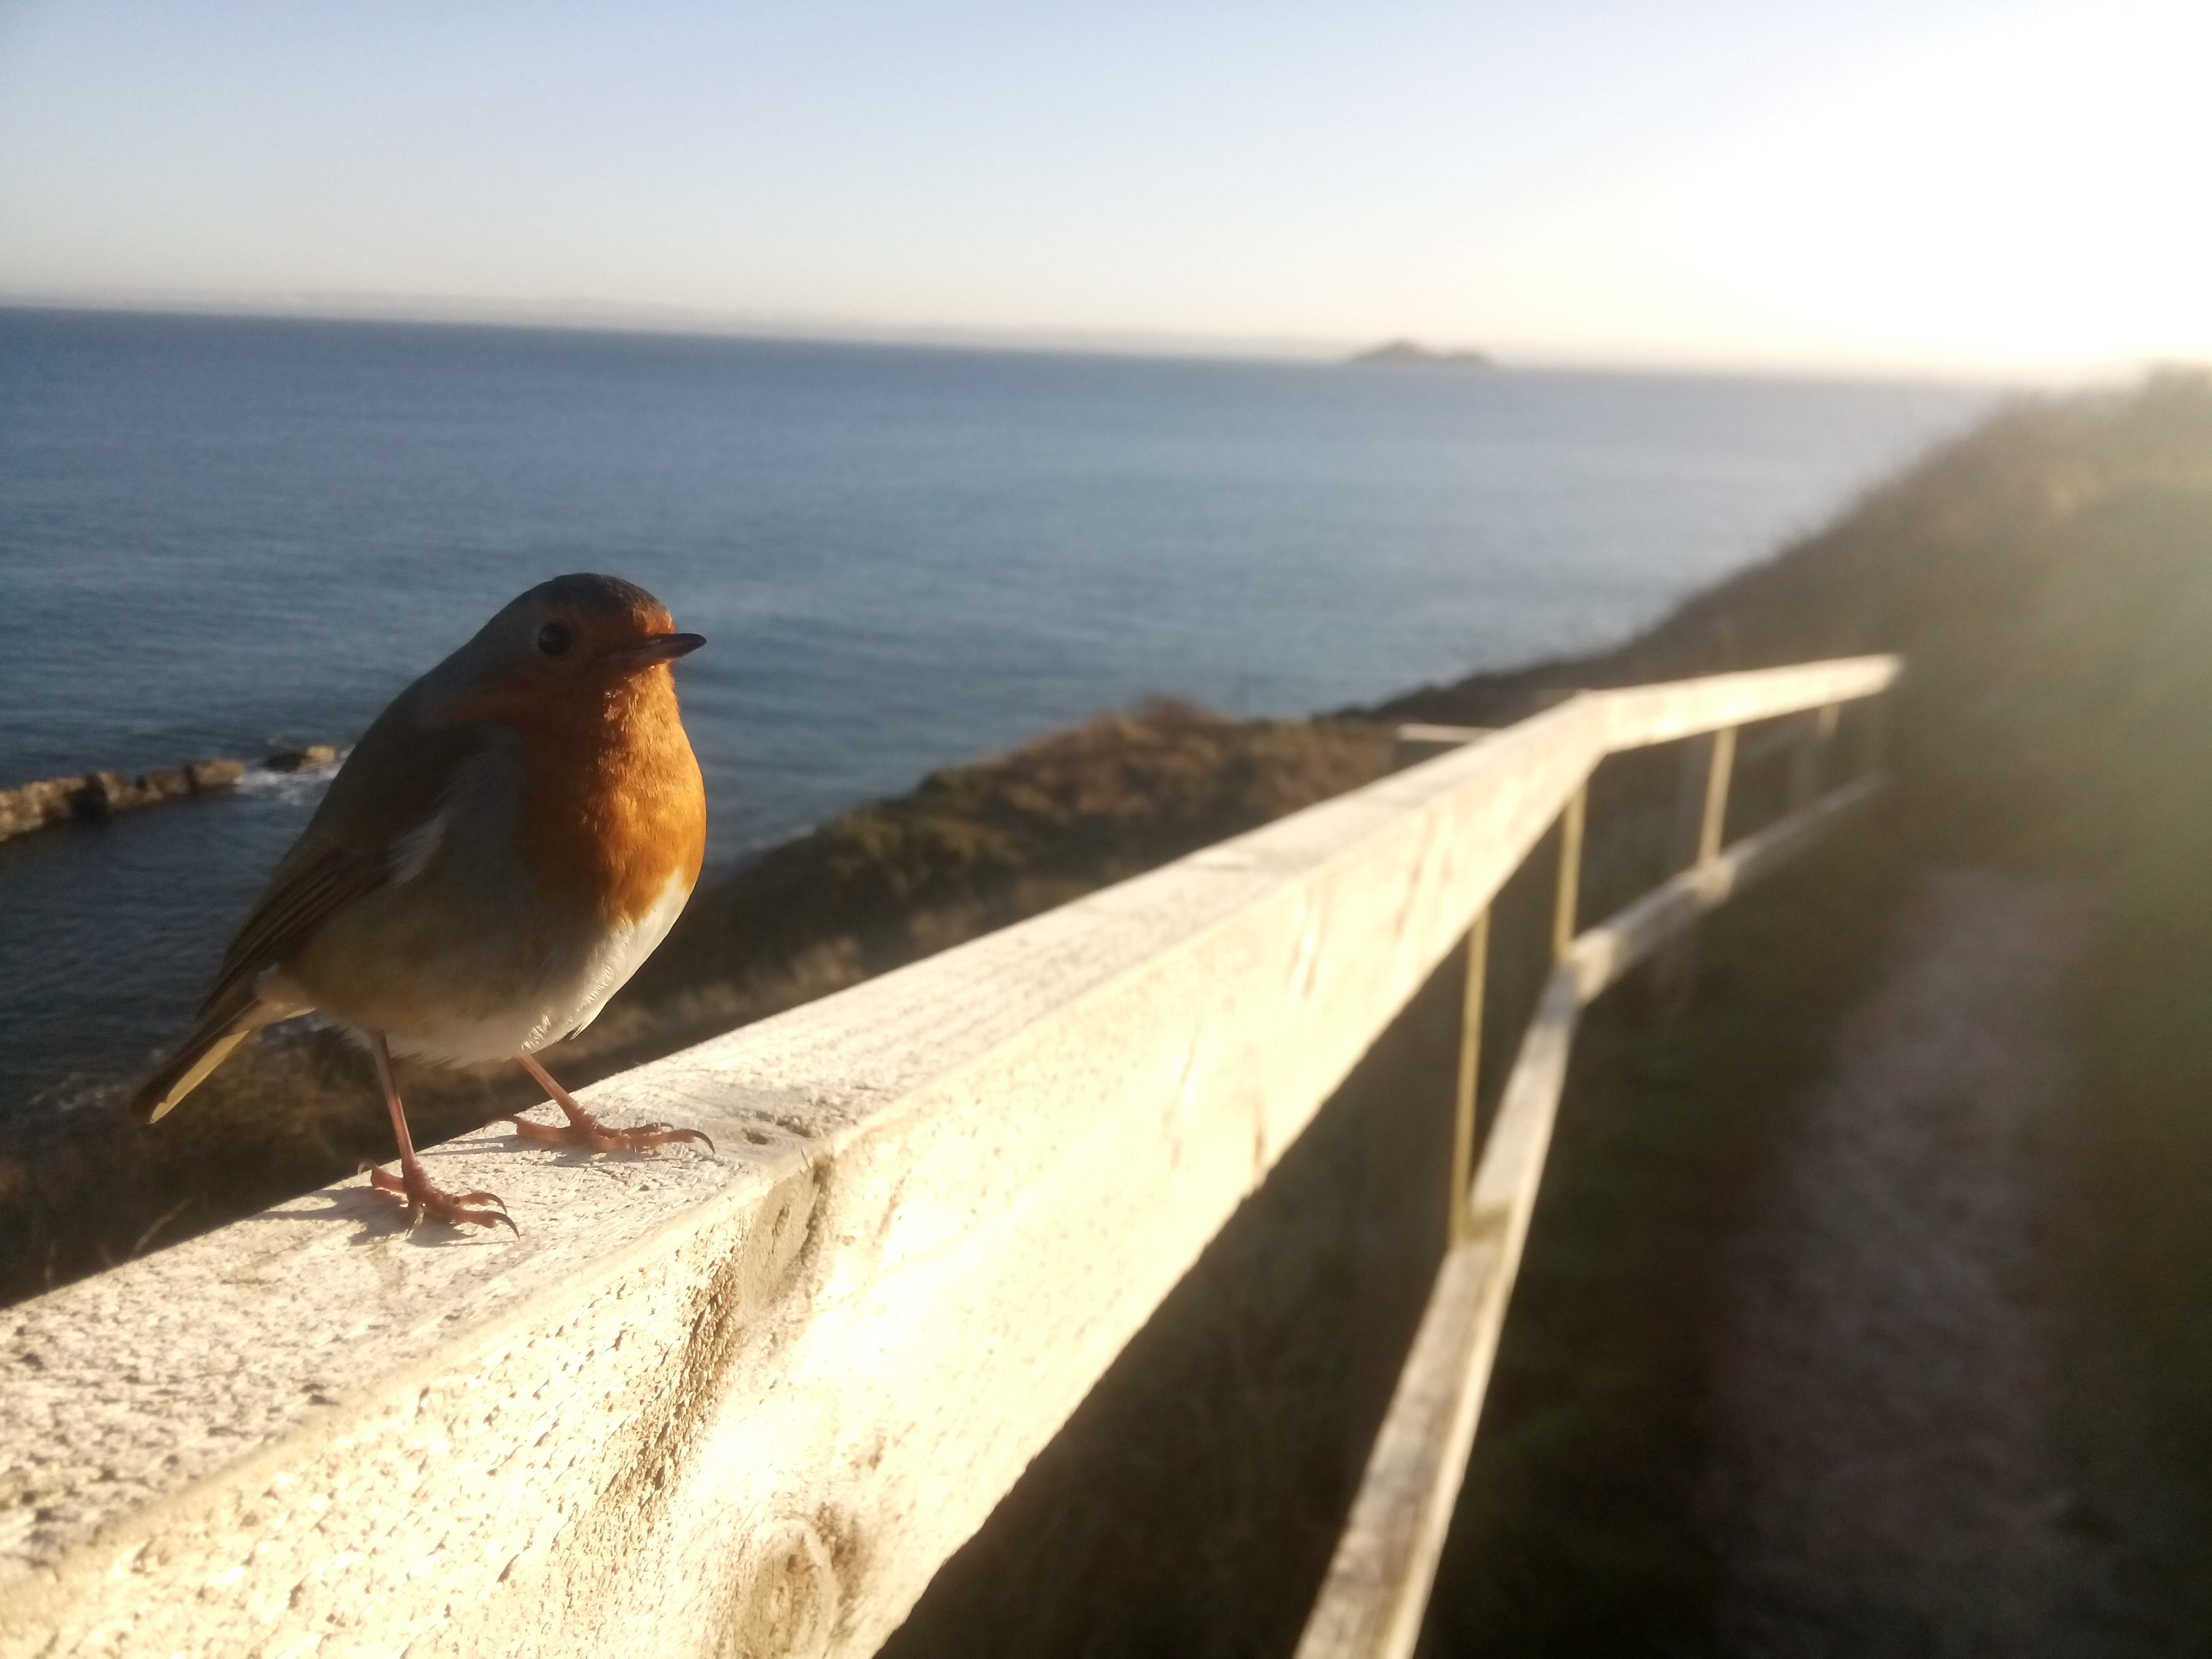 The small robin loves the view of the sea from this spot